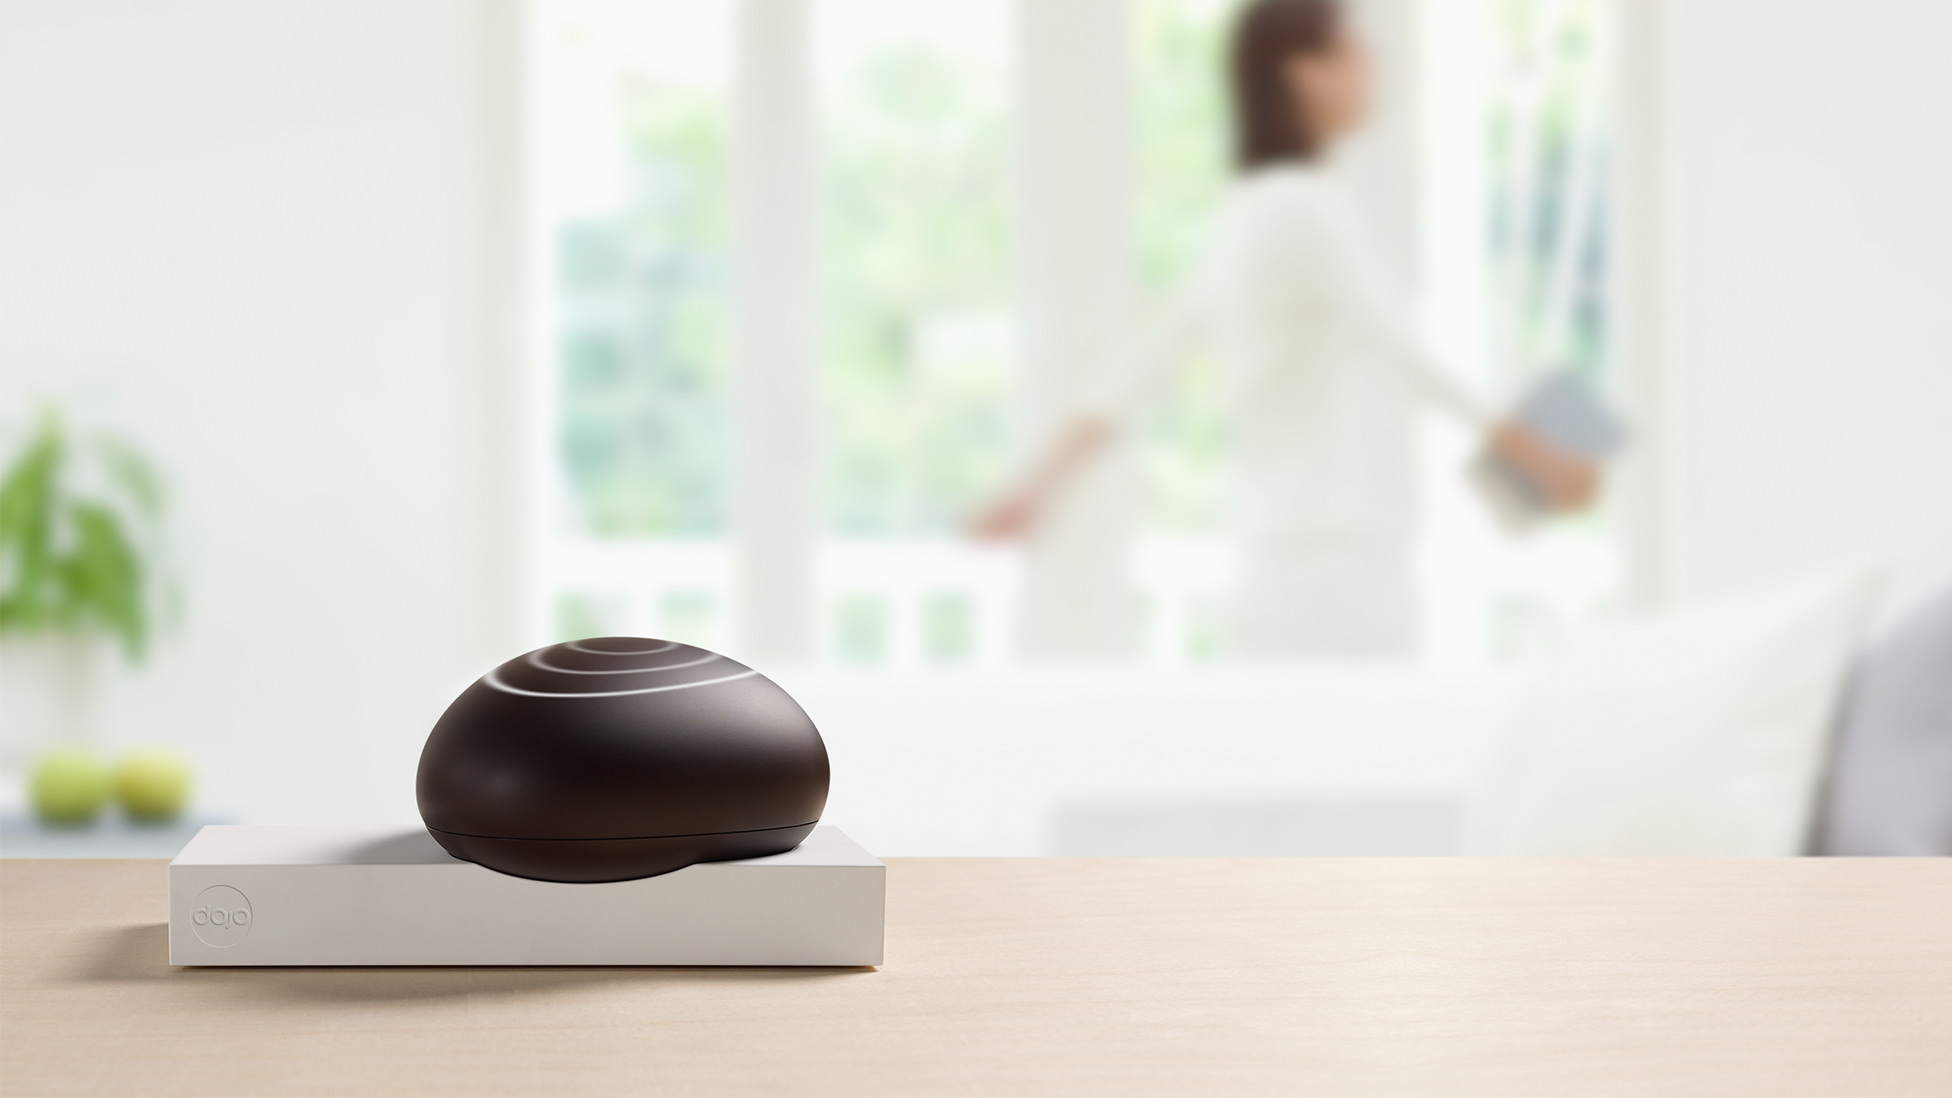 The Dojo gives users the ability to choose their in-home IoT security options. (BullGuard)